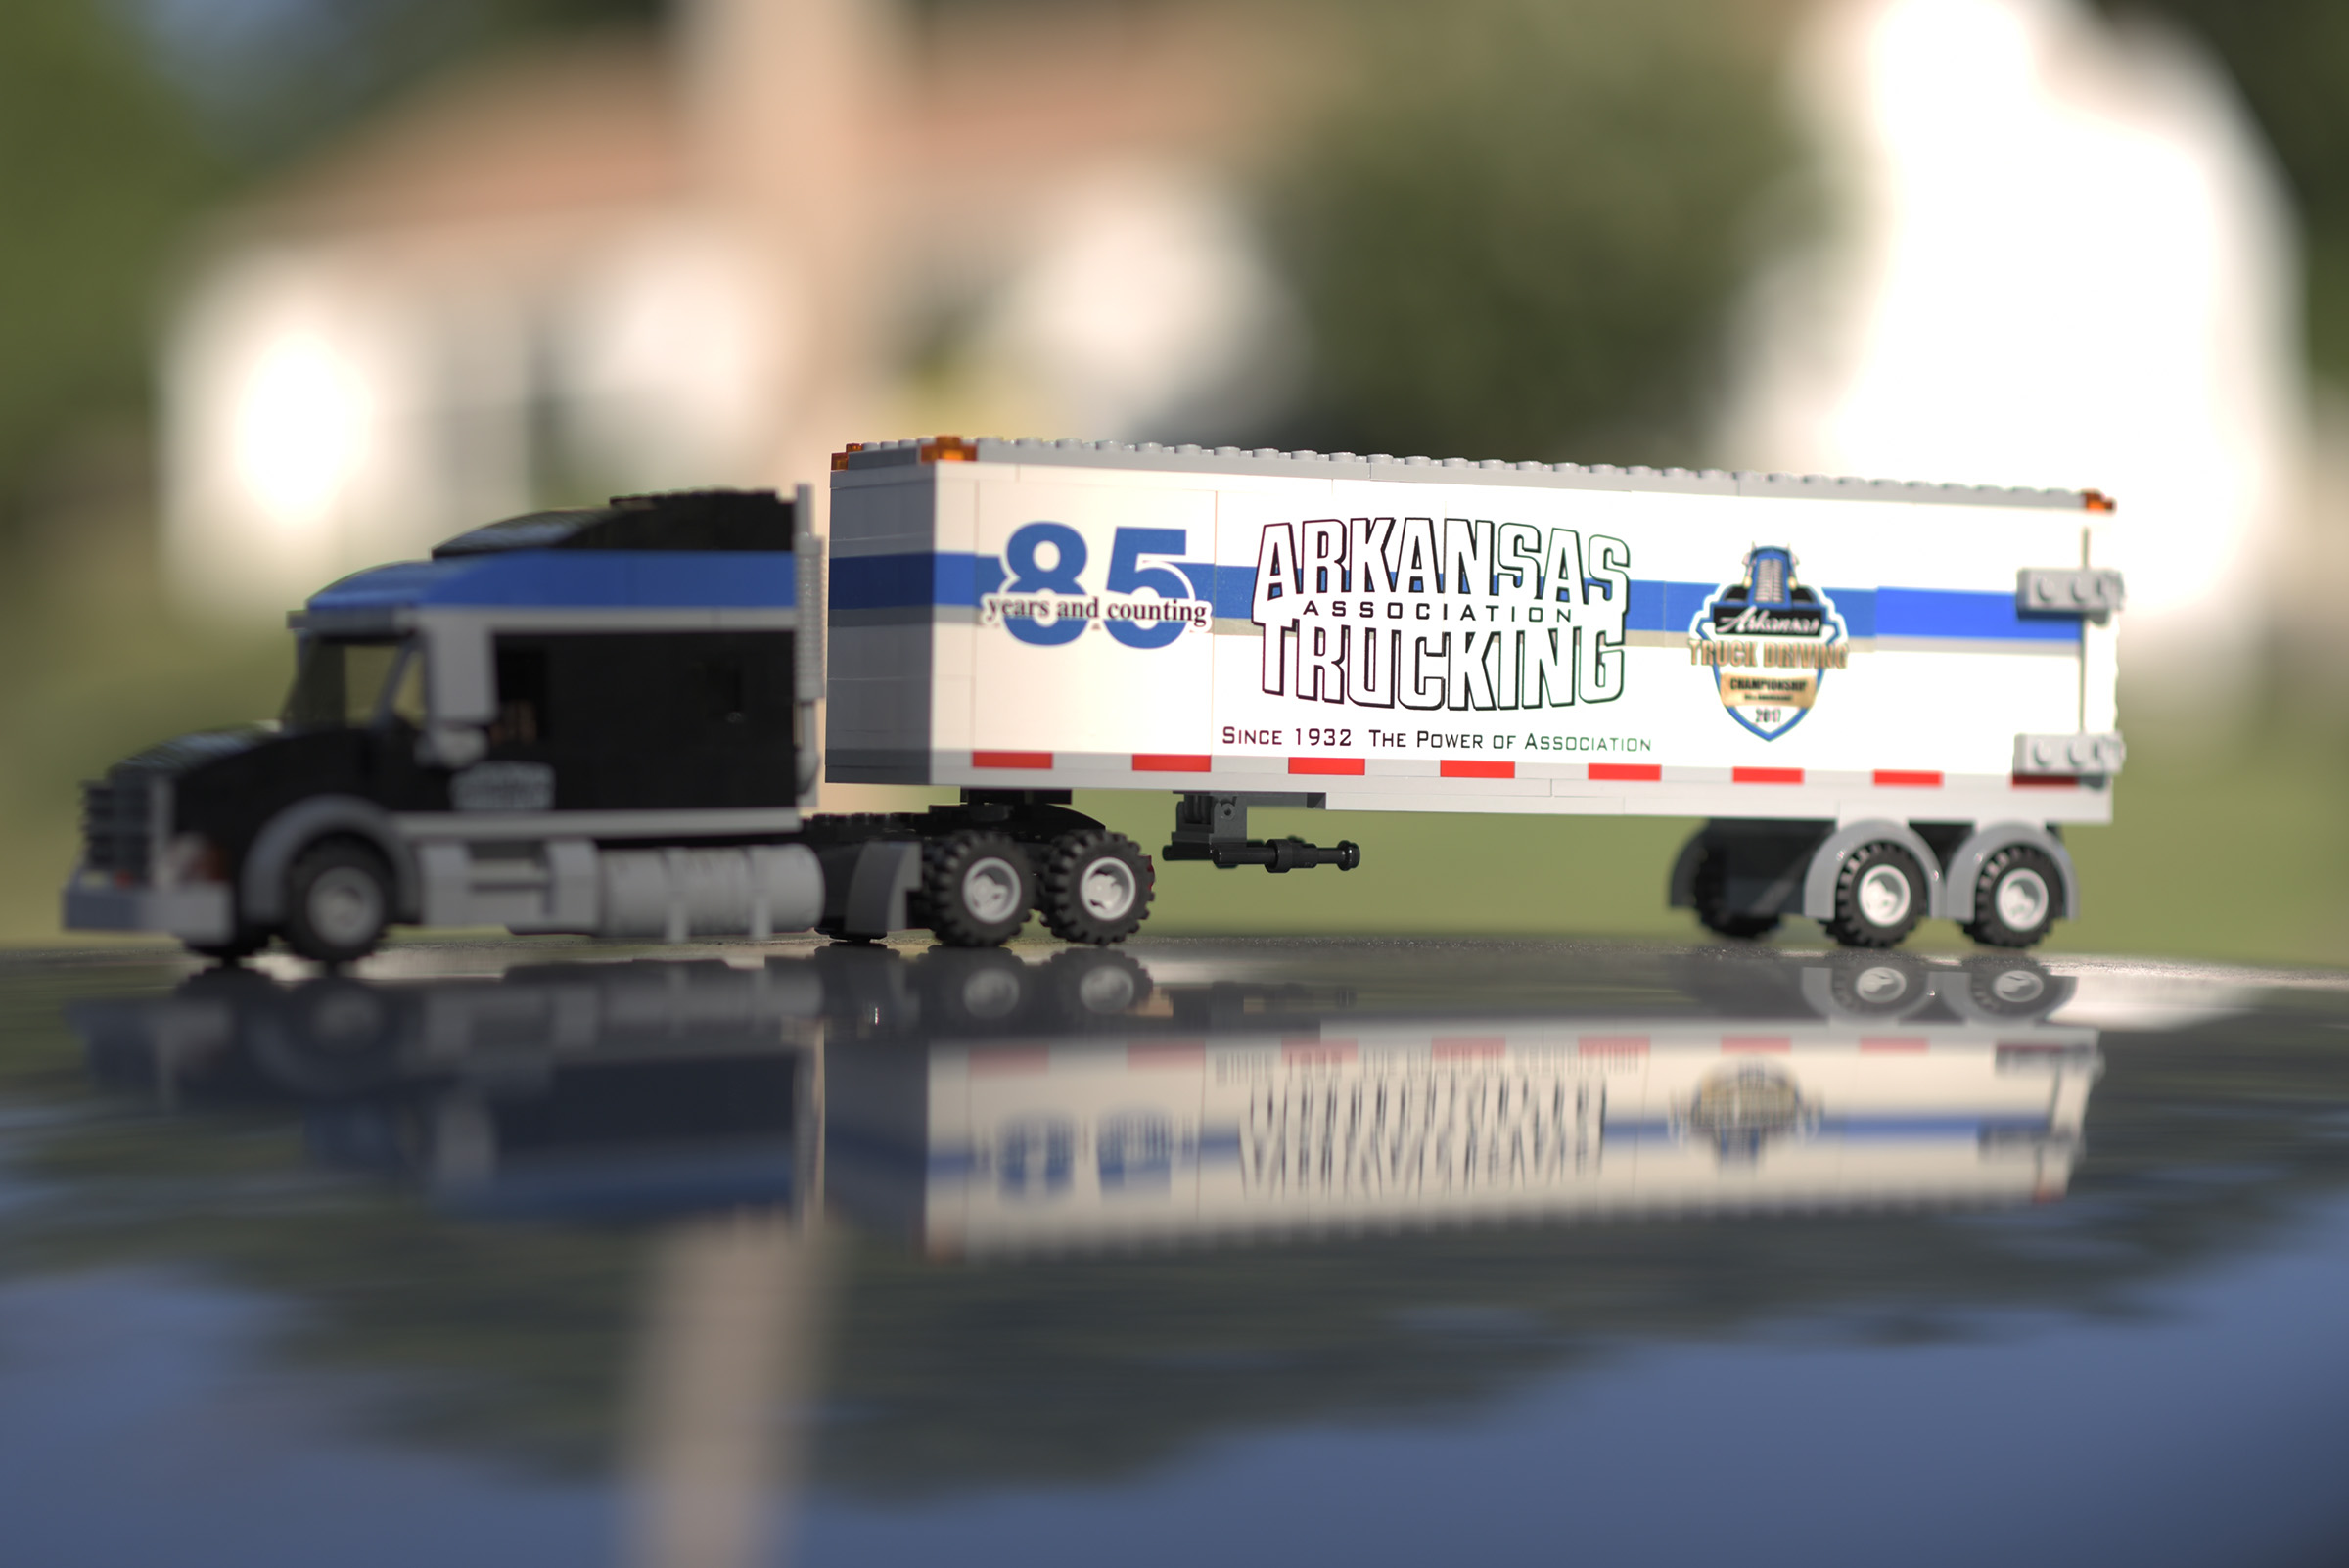 Arkansas Trucking commemorative lego set